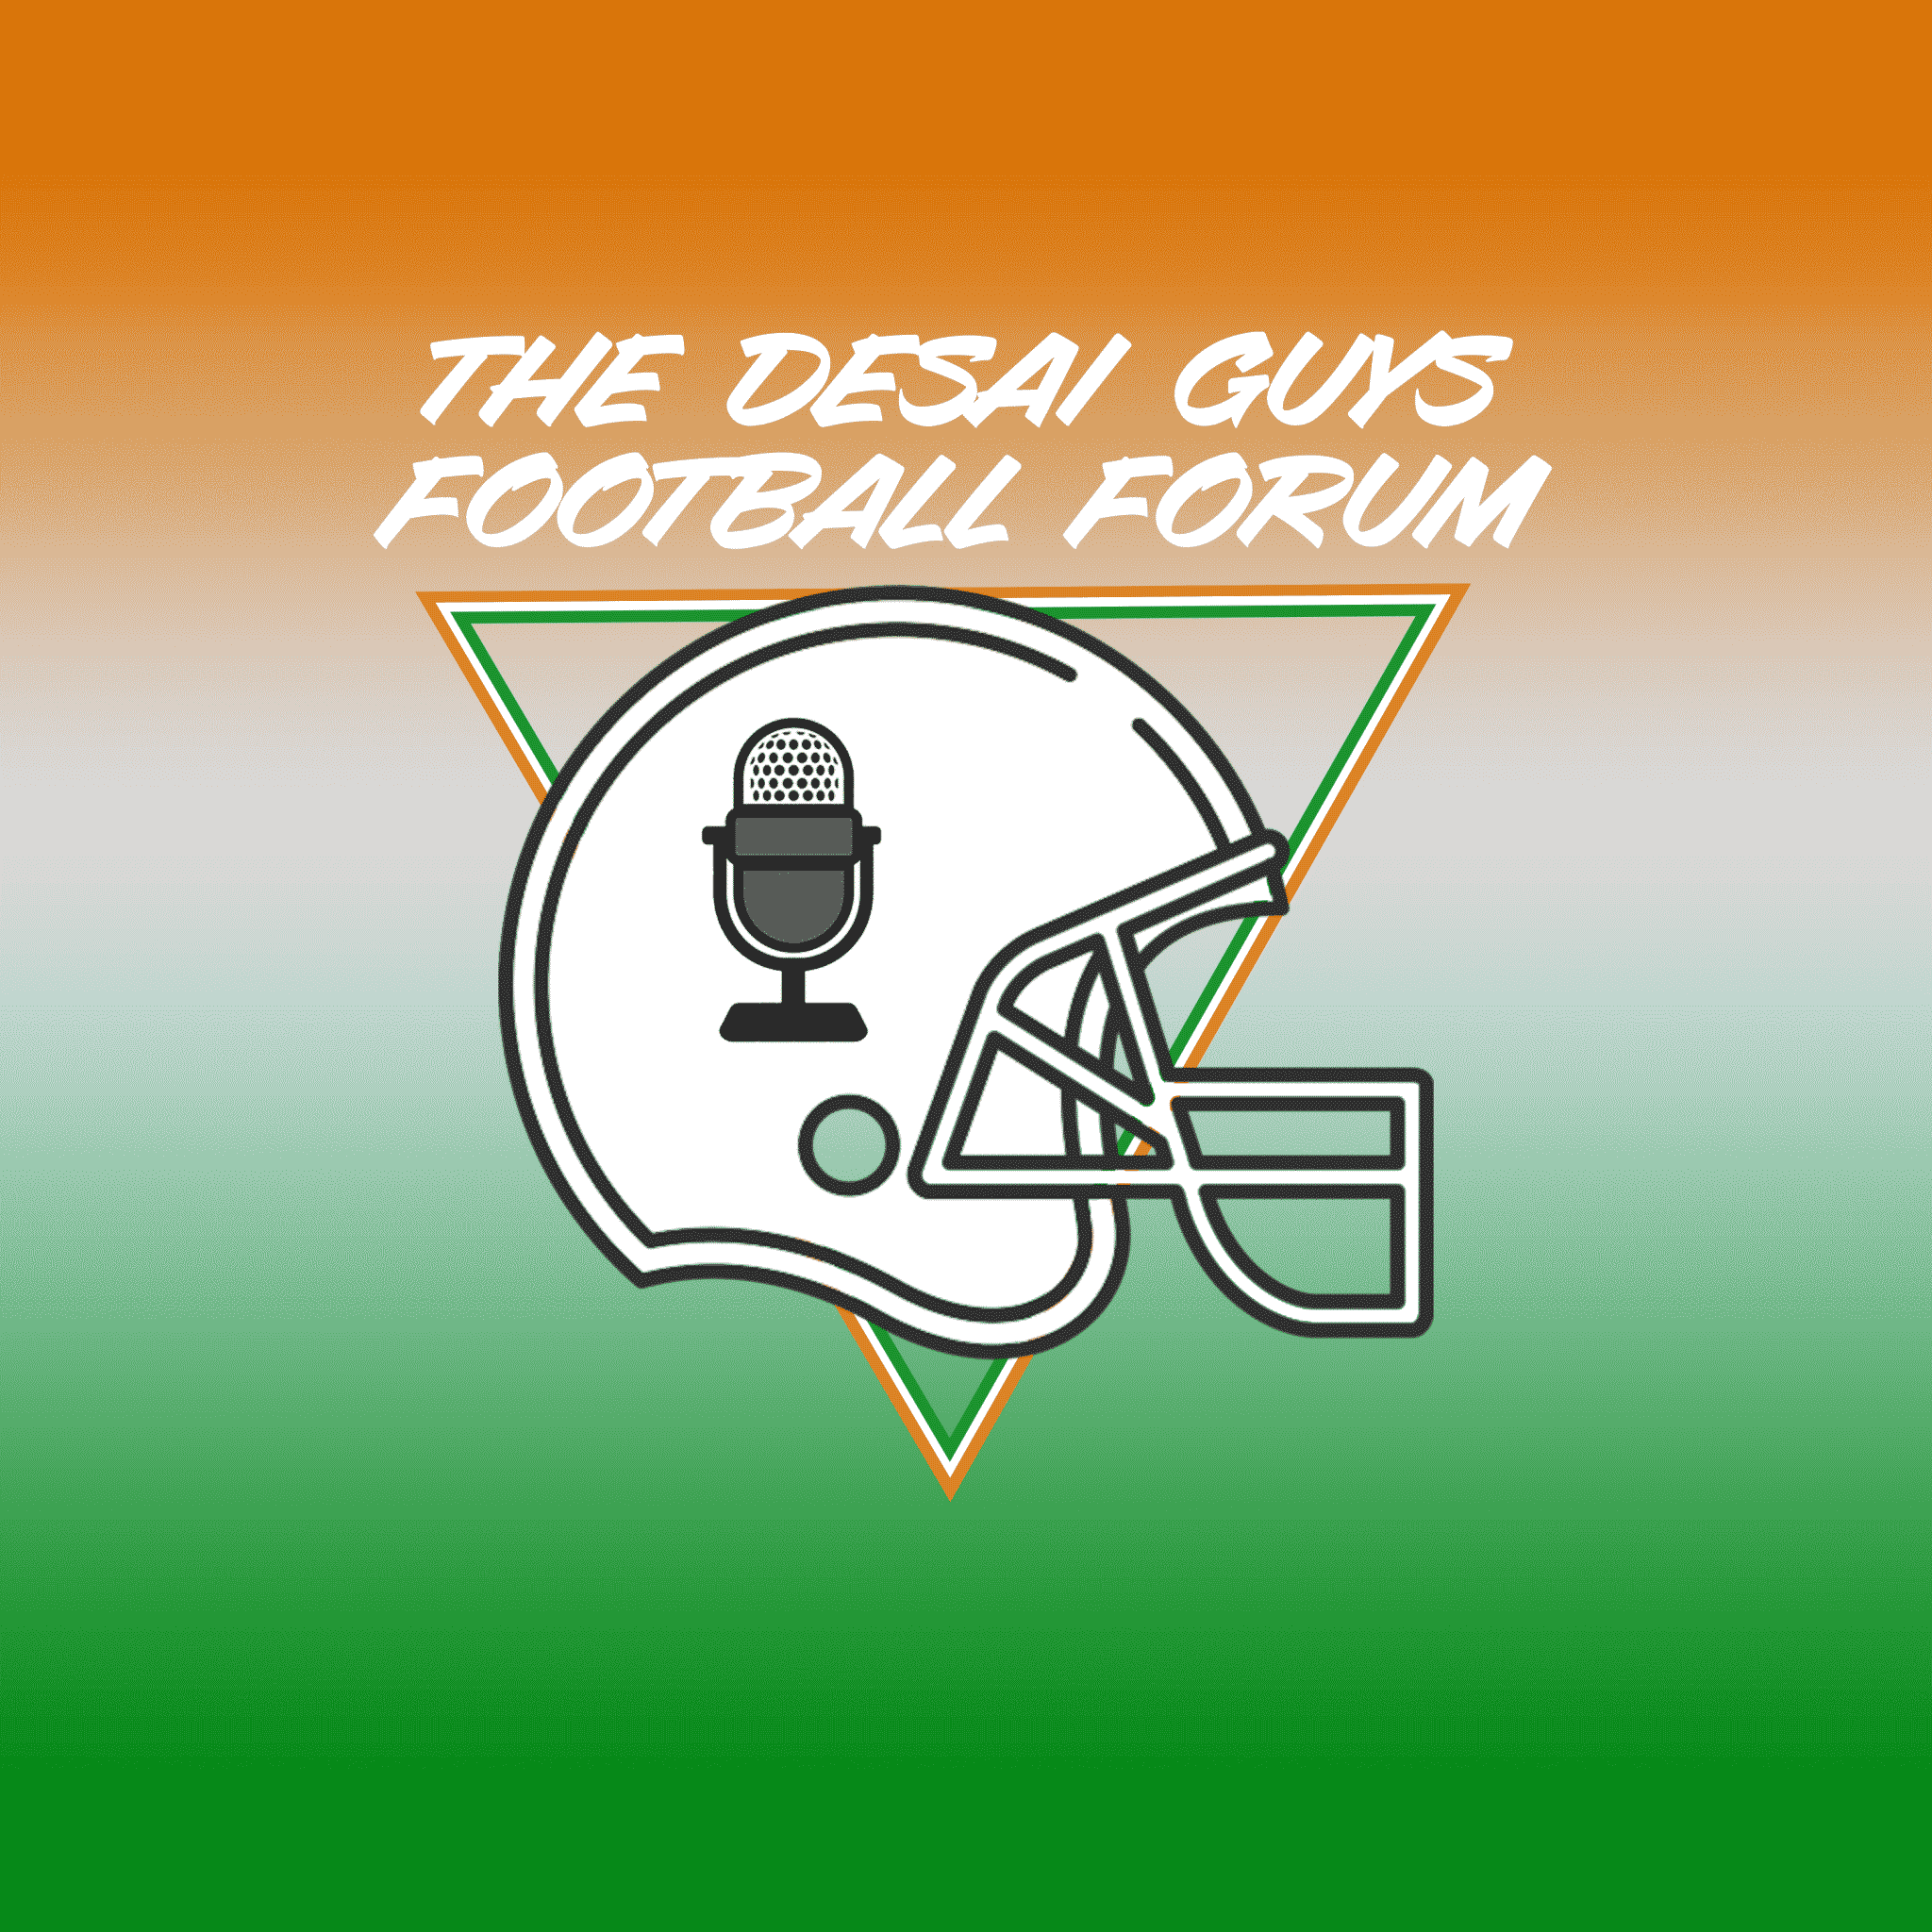 Episode 4 – Revisiting The NFL Draft And 2020 Breakout Players